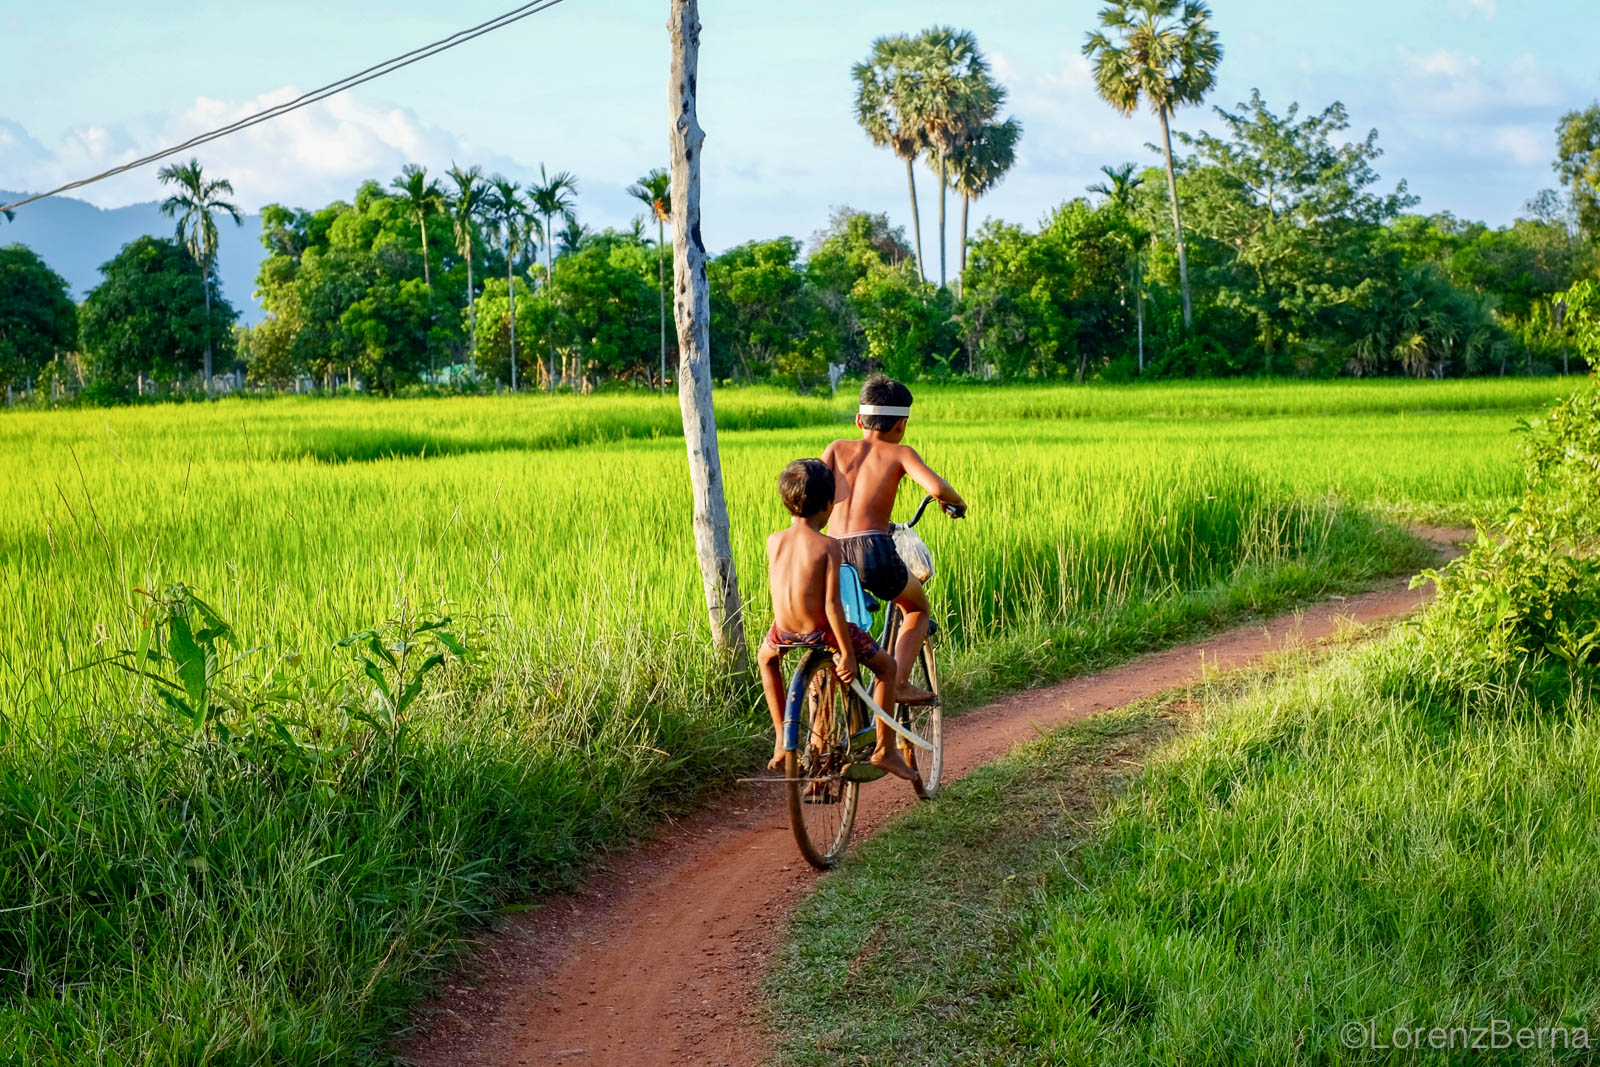 Cambodian kids cycling in Kampot countryside - Cambodia Travel Photography